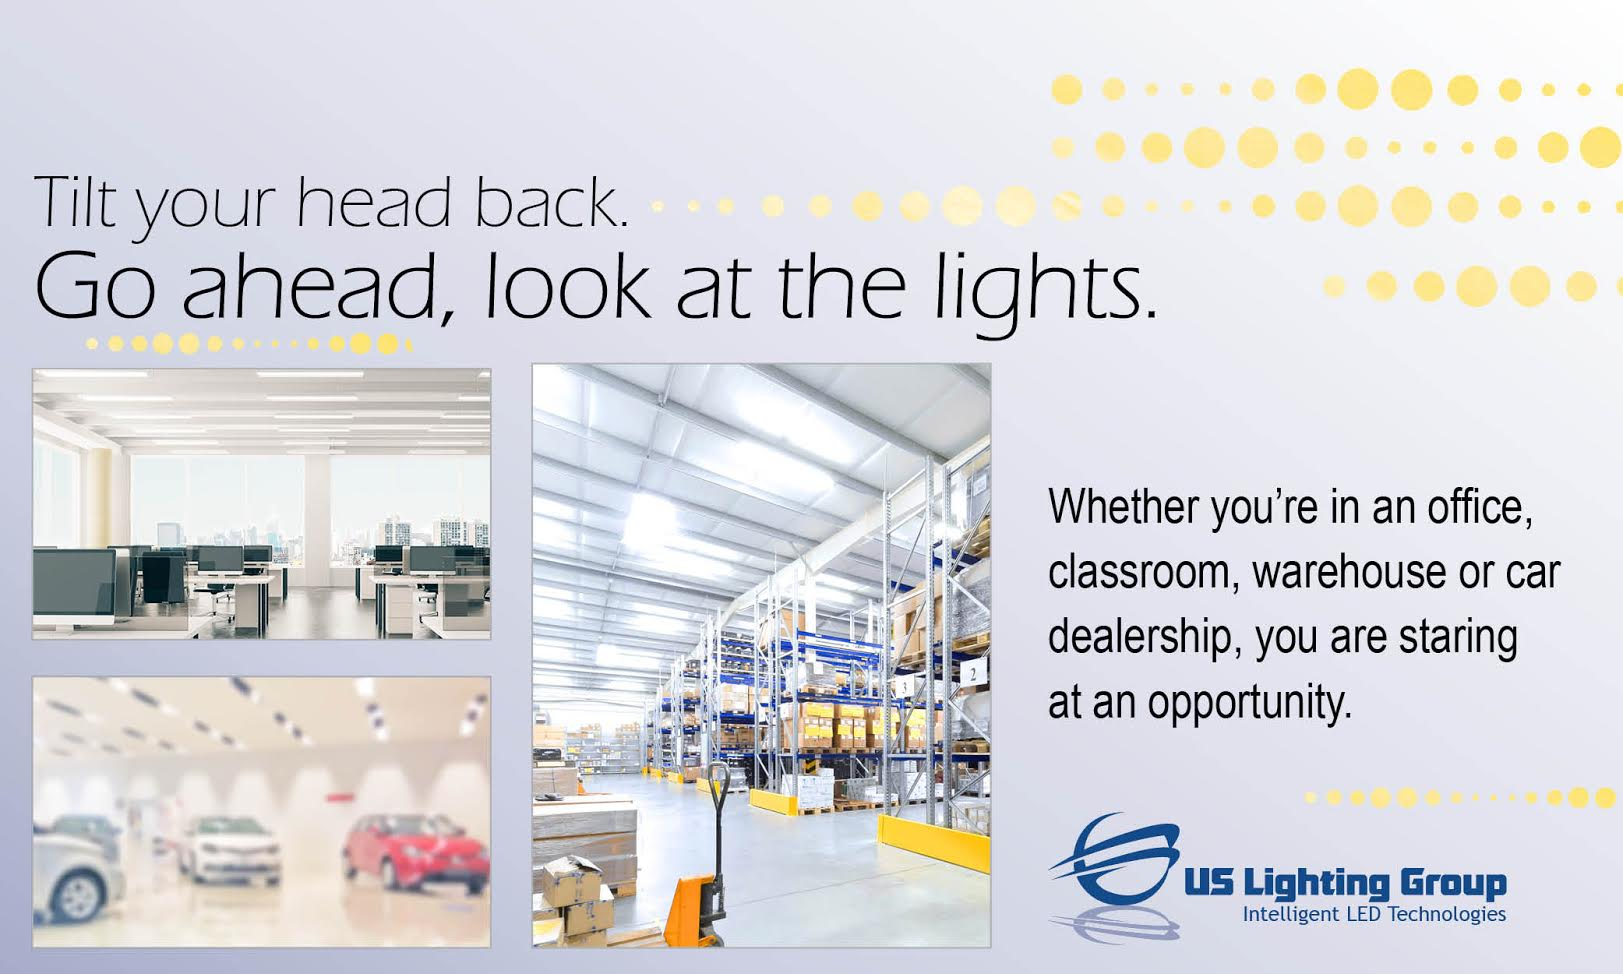 US Lighting Group Business Opportunity